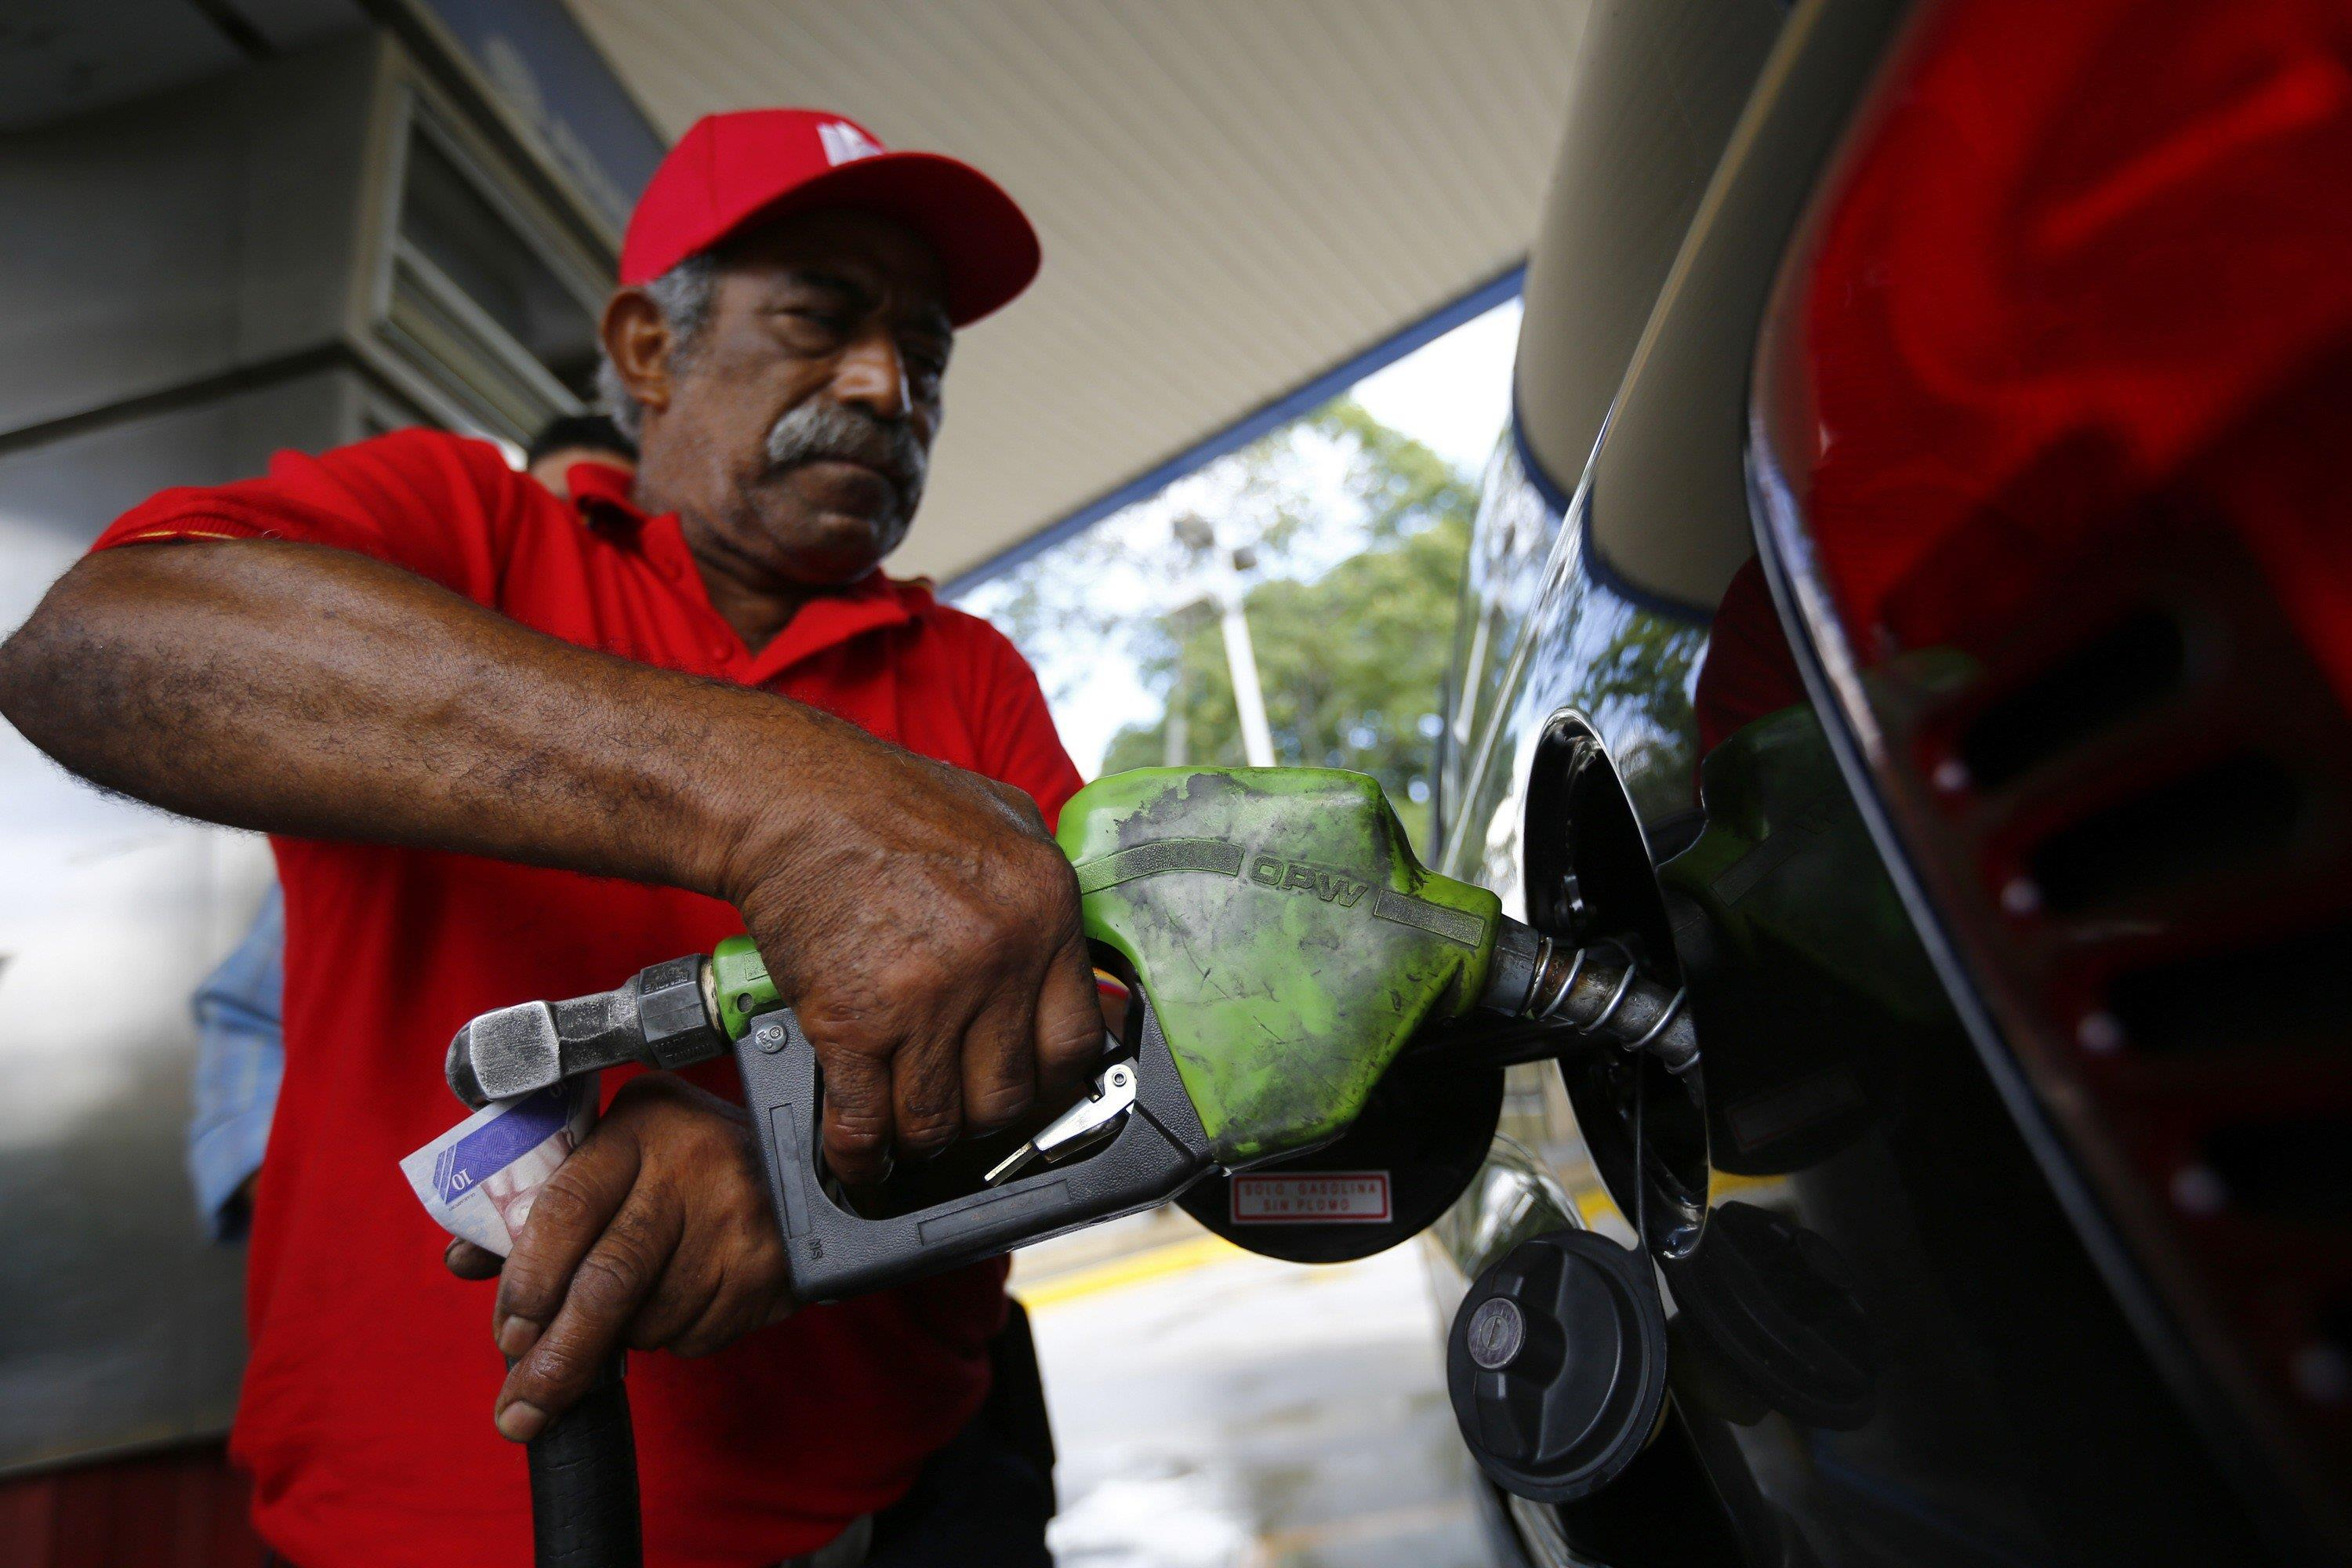 Image: A man pumps gasoline at a service station in Caracas